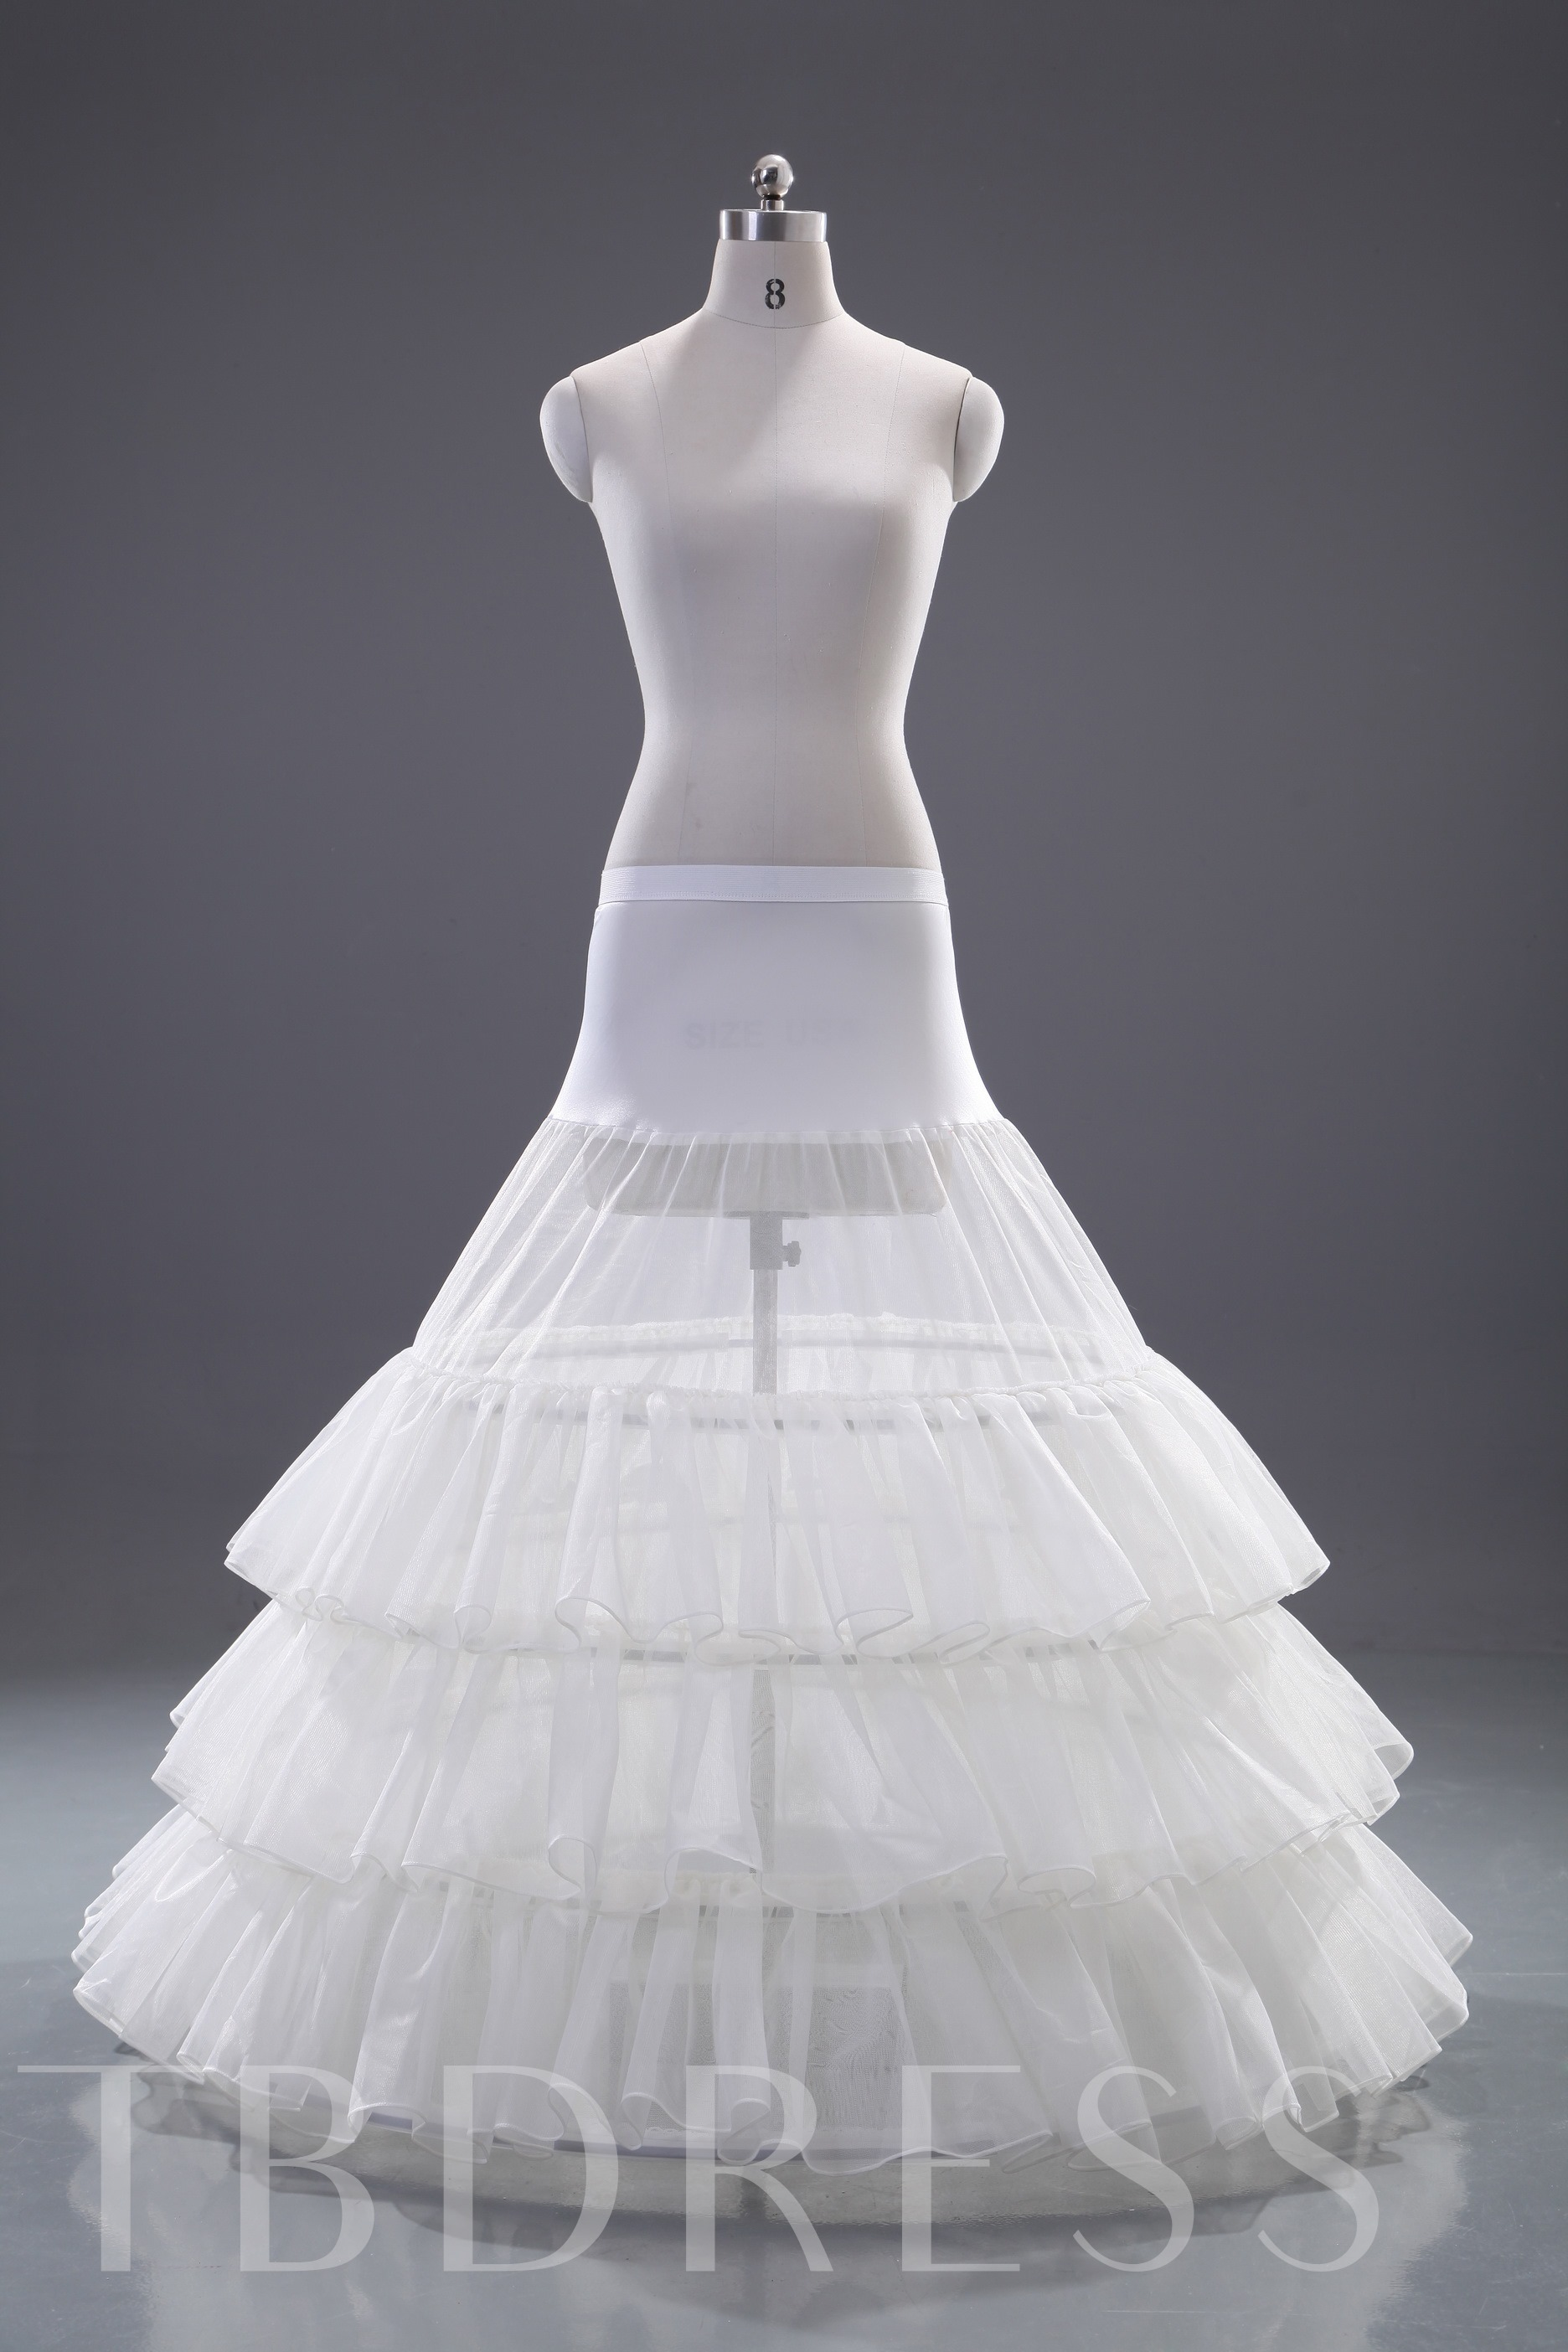 Four Layers Three steel wires Wedding Petticoat